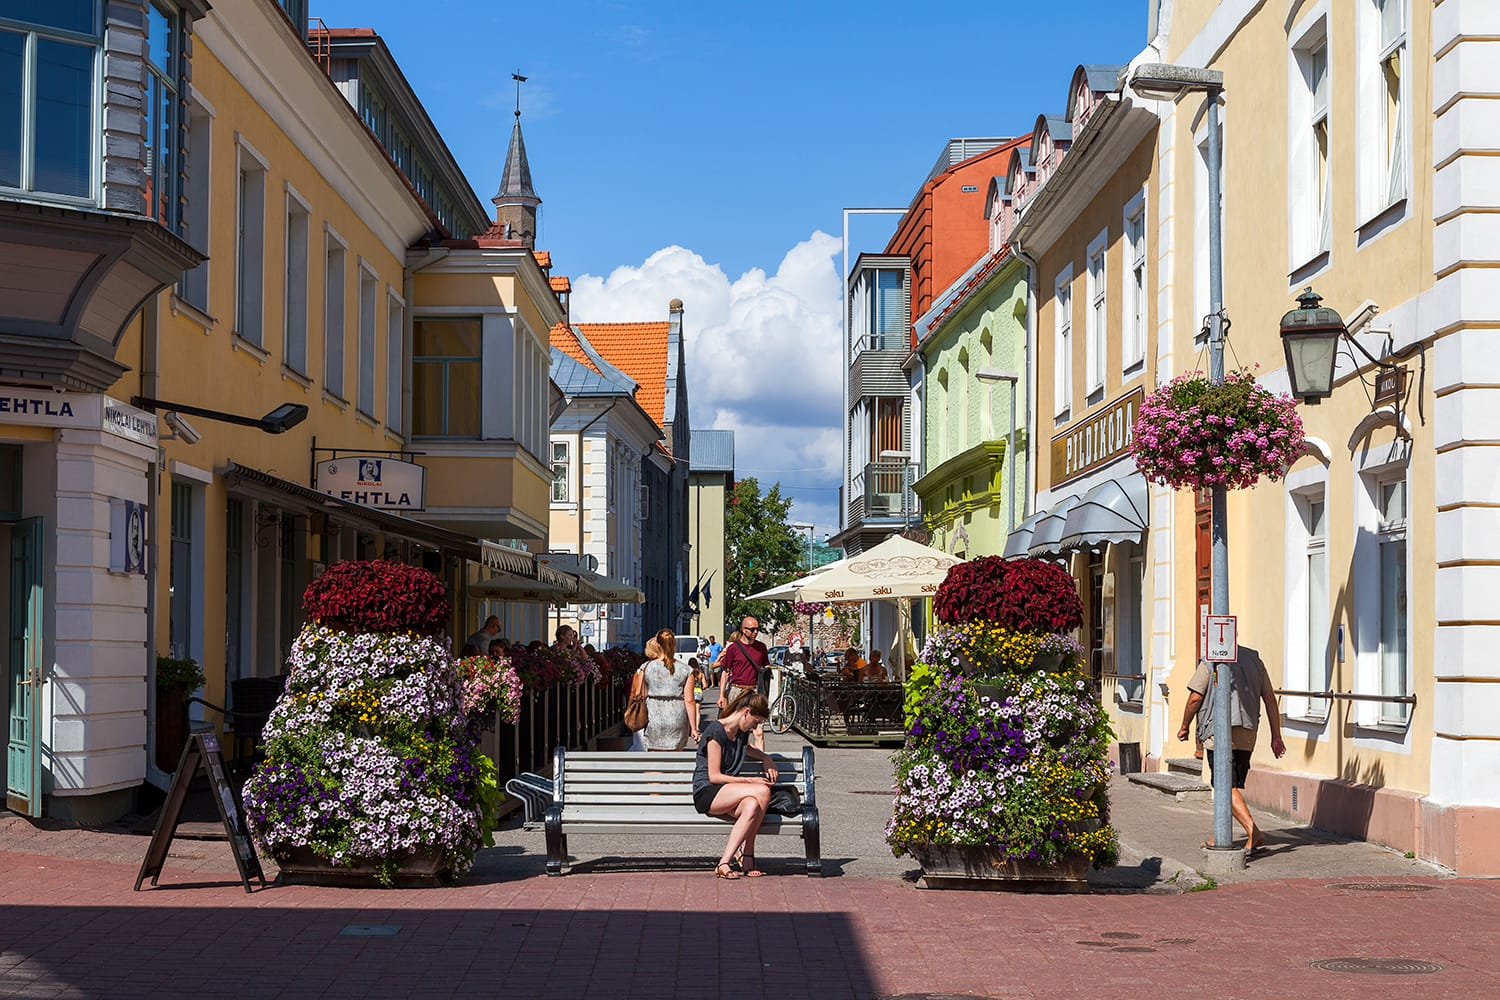 Old town in Parnu, Estonia